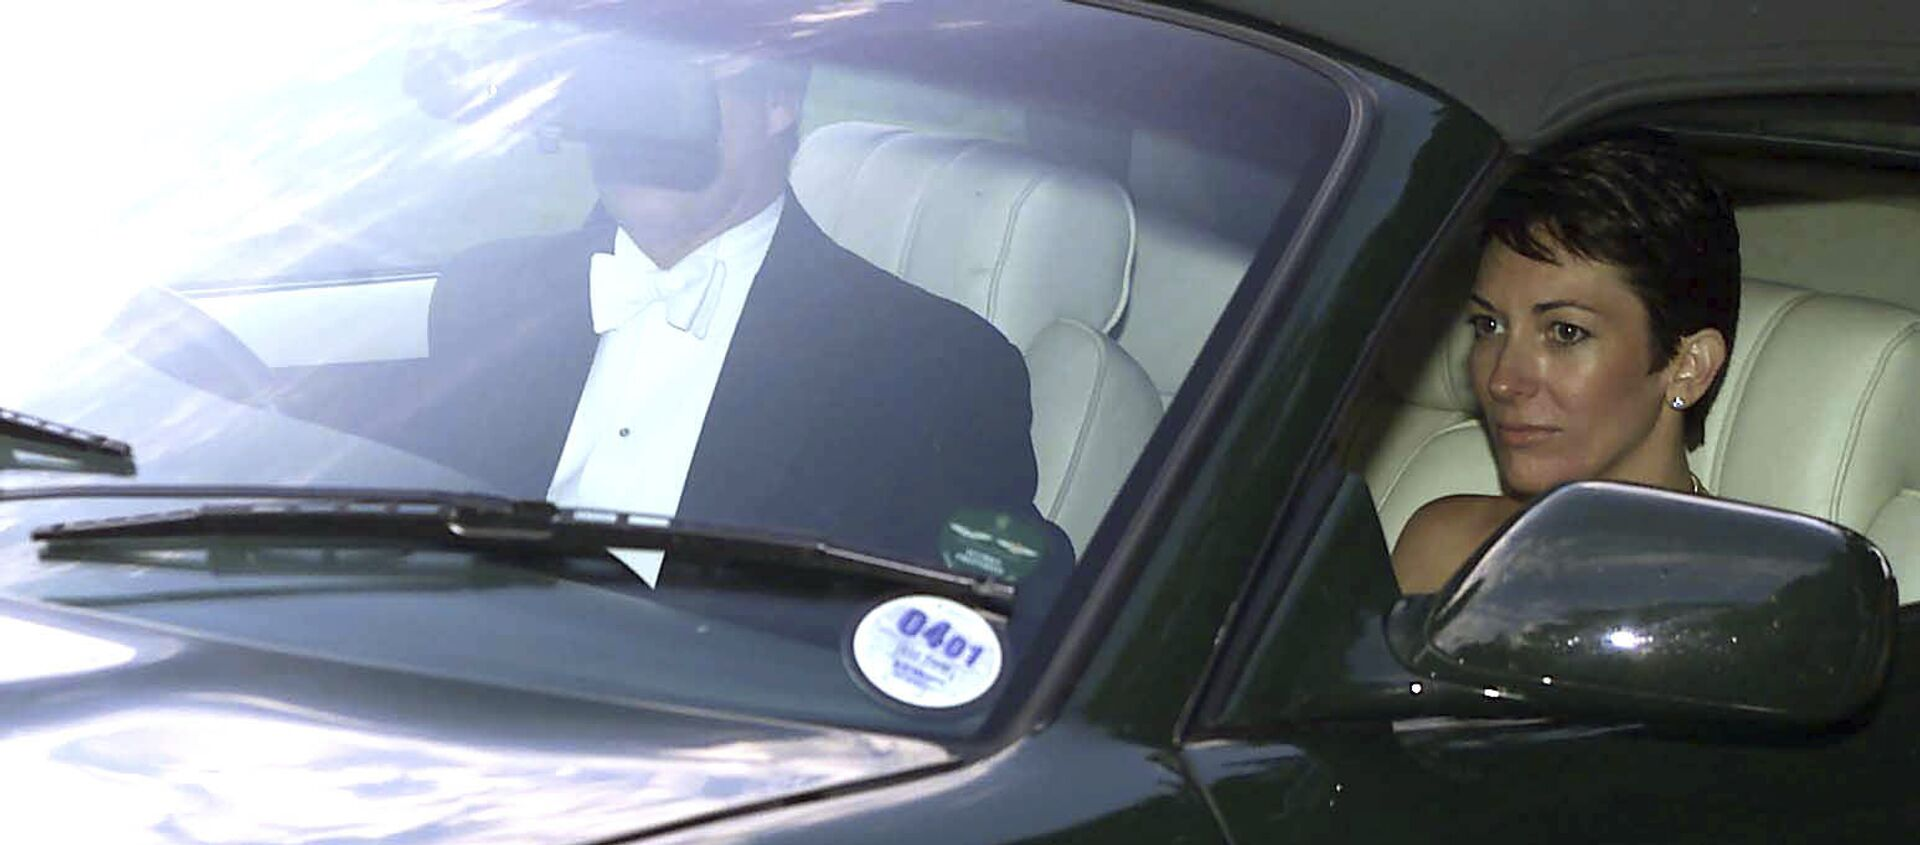 n this Sept. 2, 2000 file photo, British socialite Ghislaine Maxwell, driven by Britain's Prince Andrew leaves the wedding of a former girlfriend of the prince, Aurelia Cecil, at the Parish Church of St Michael in Compton Chamberlayne near Salisbury, England. The FBI said Thursday July 2, 2020, Ghislaine Maxwell, who was accused by many women of helping procure underage sex partners for Jeffrey Epstein, has been arrested in New Hampshire.  - Sputnik International, 1920, 23.03.2021